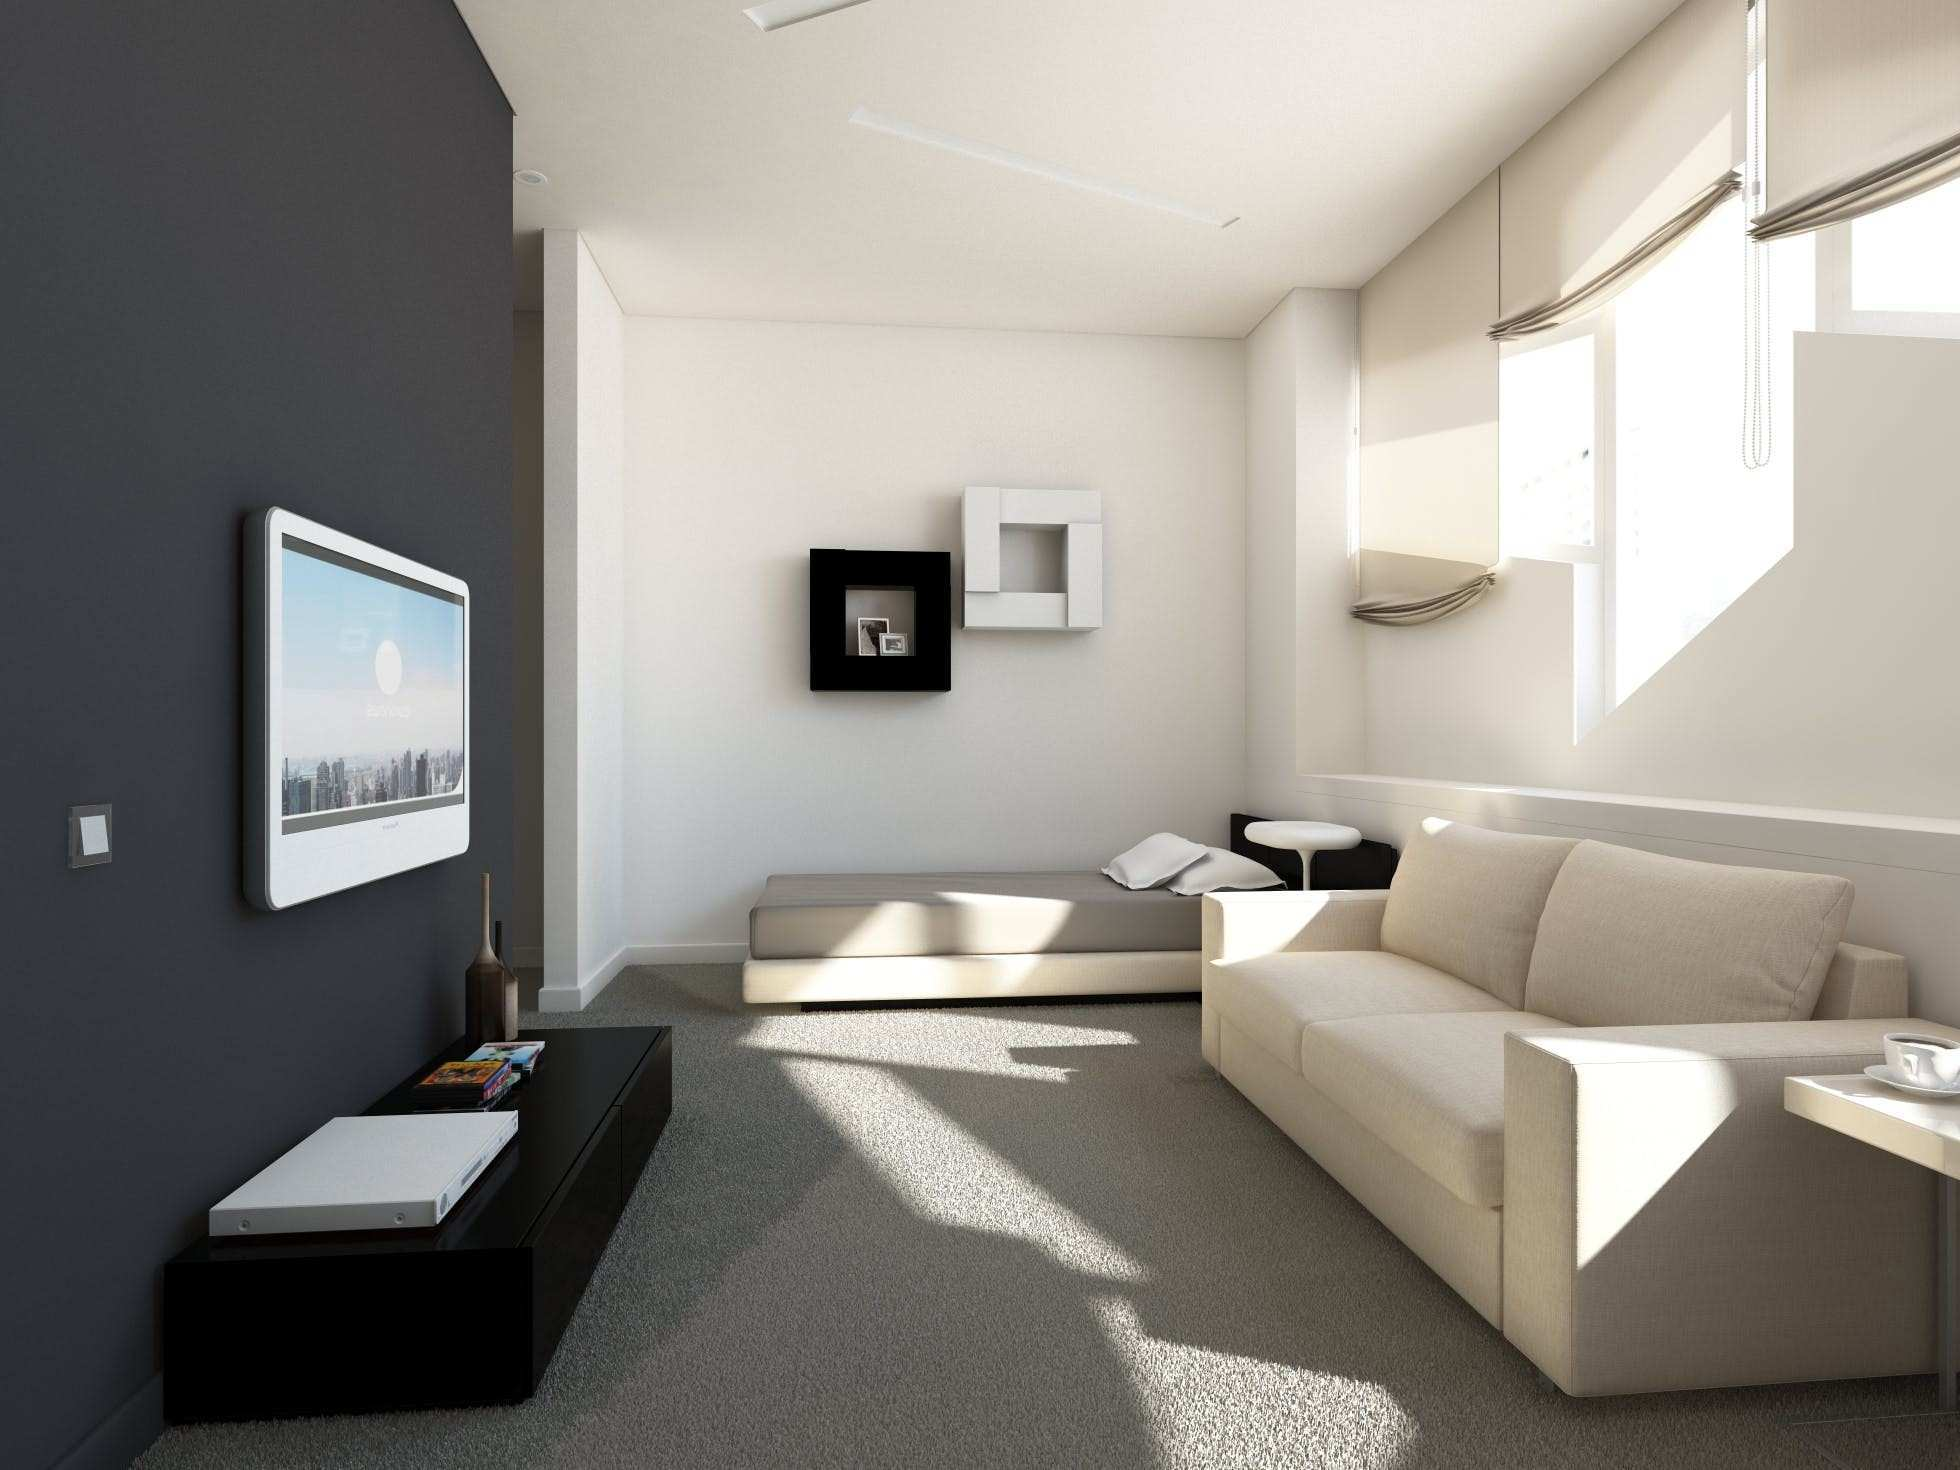 Walls Work Elegant How to Design A Living Room 11 Steps with Wikihow